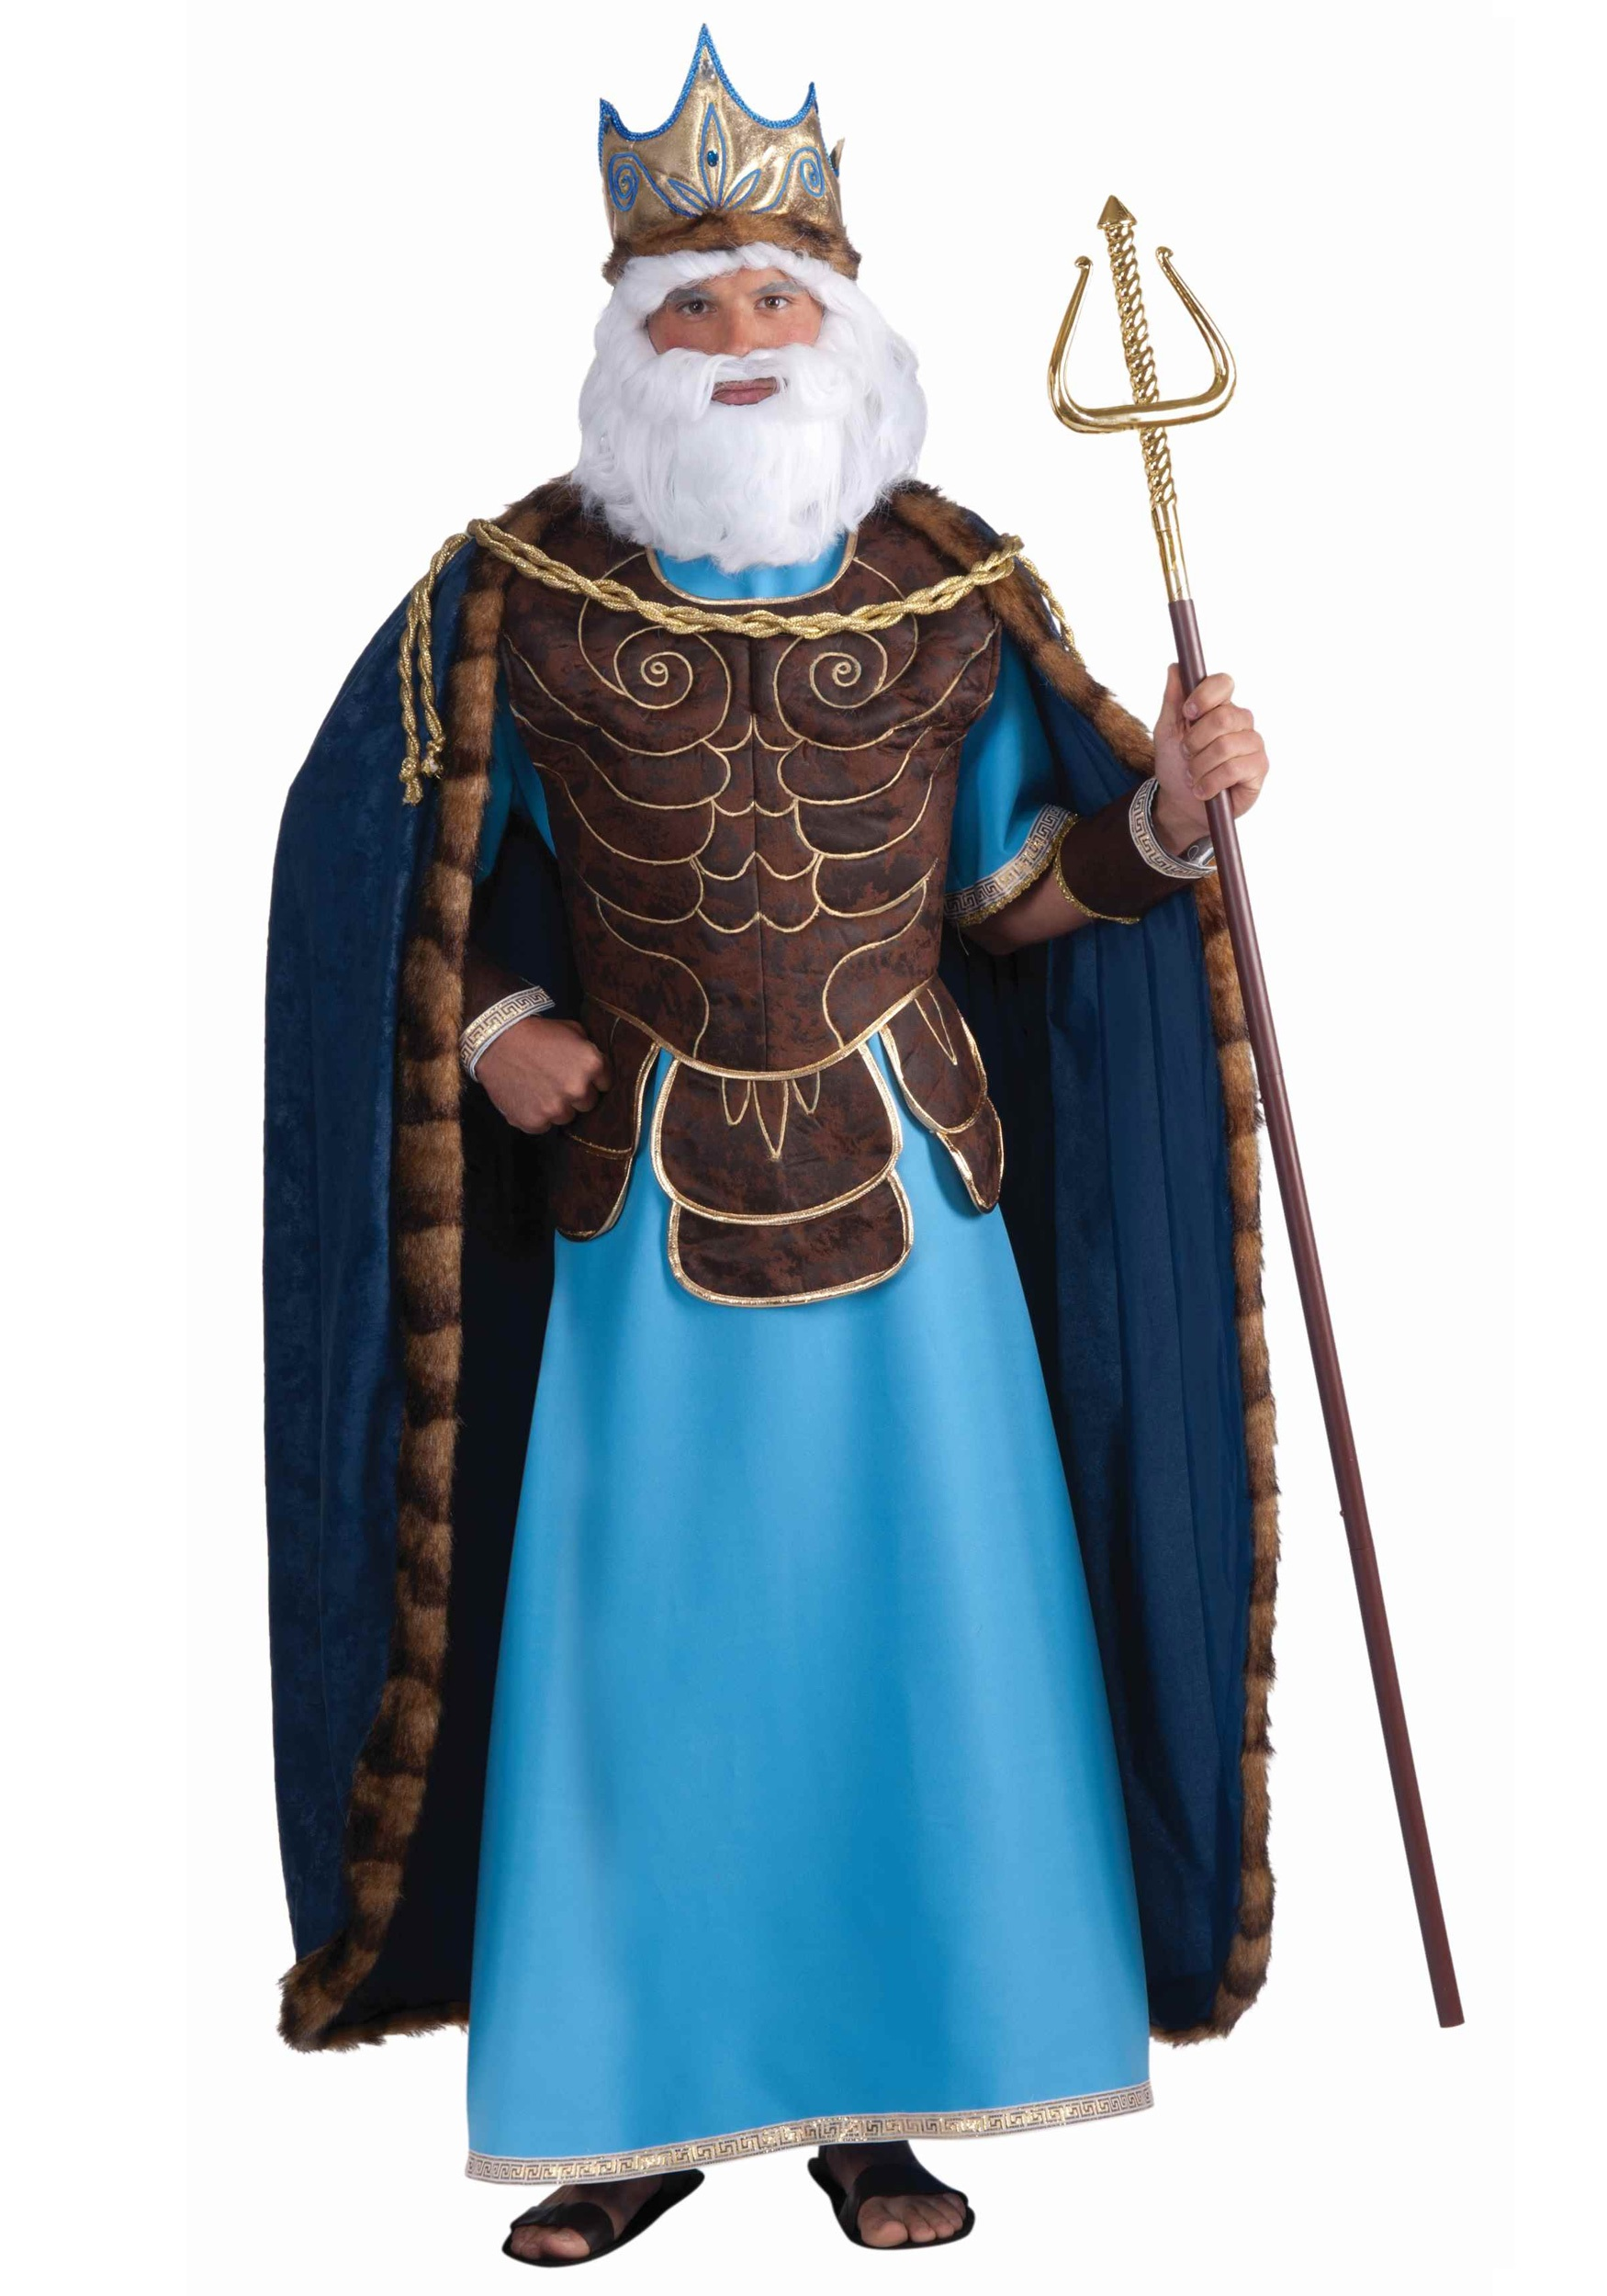 Sea Witch Costume Ideas King of the Sea Costum...